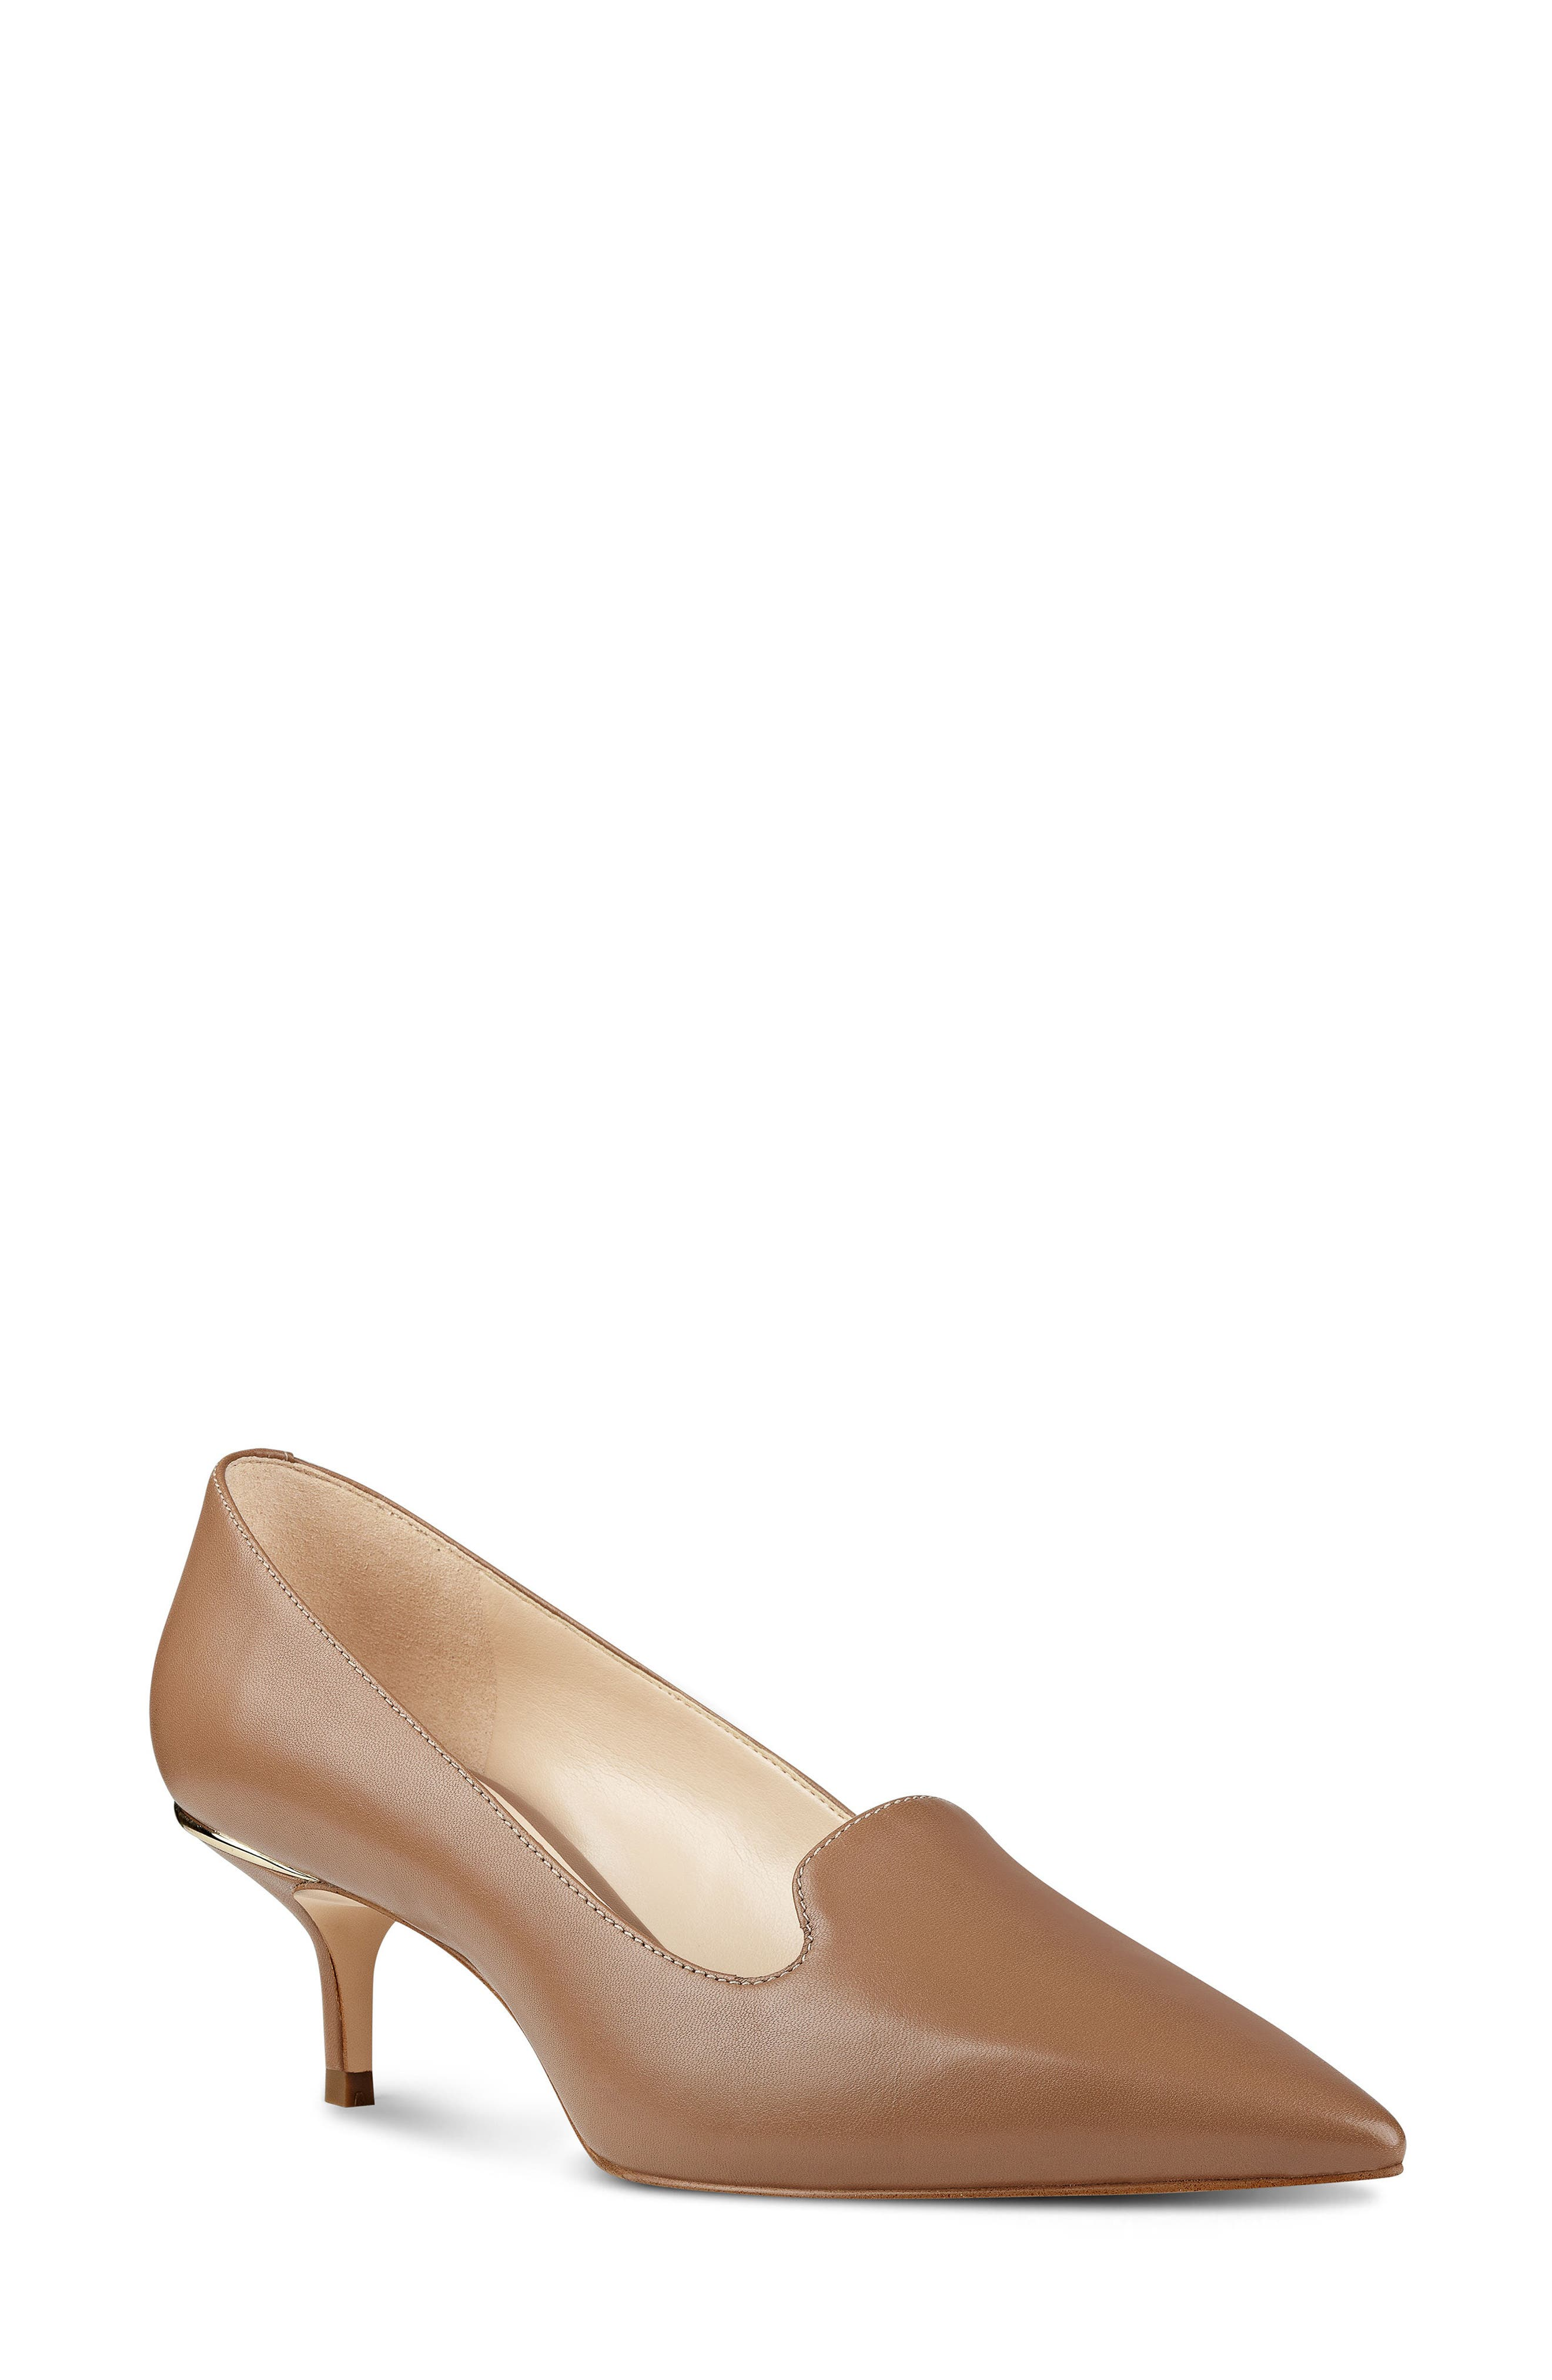 Alternate Image 1 Selected - Nine West Freddee Loafer Pump (Women)